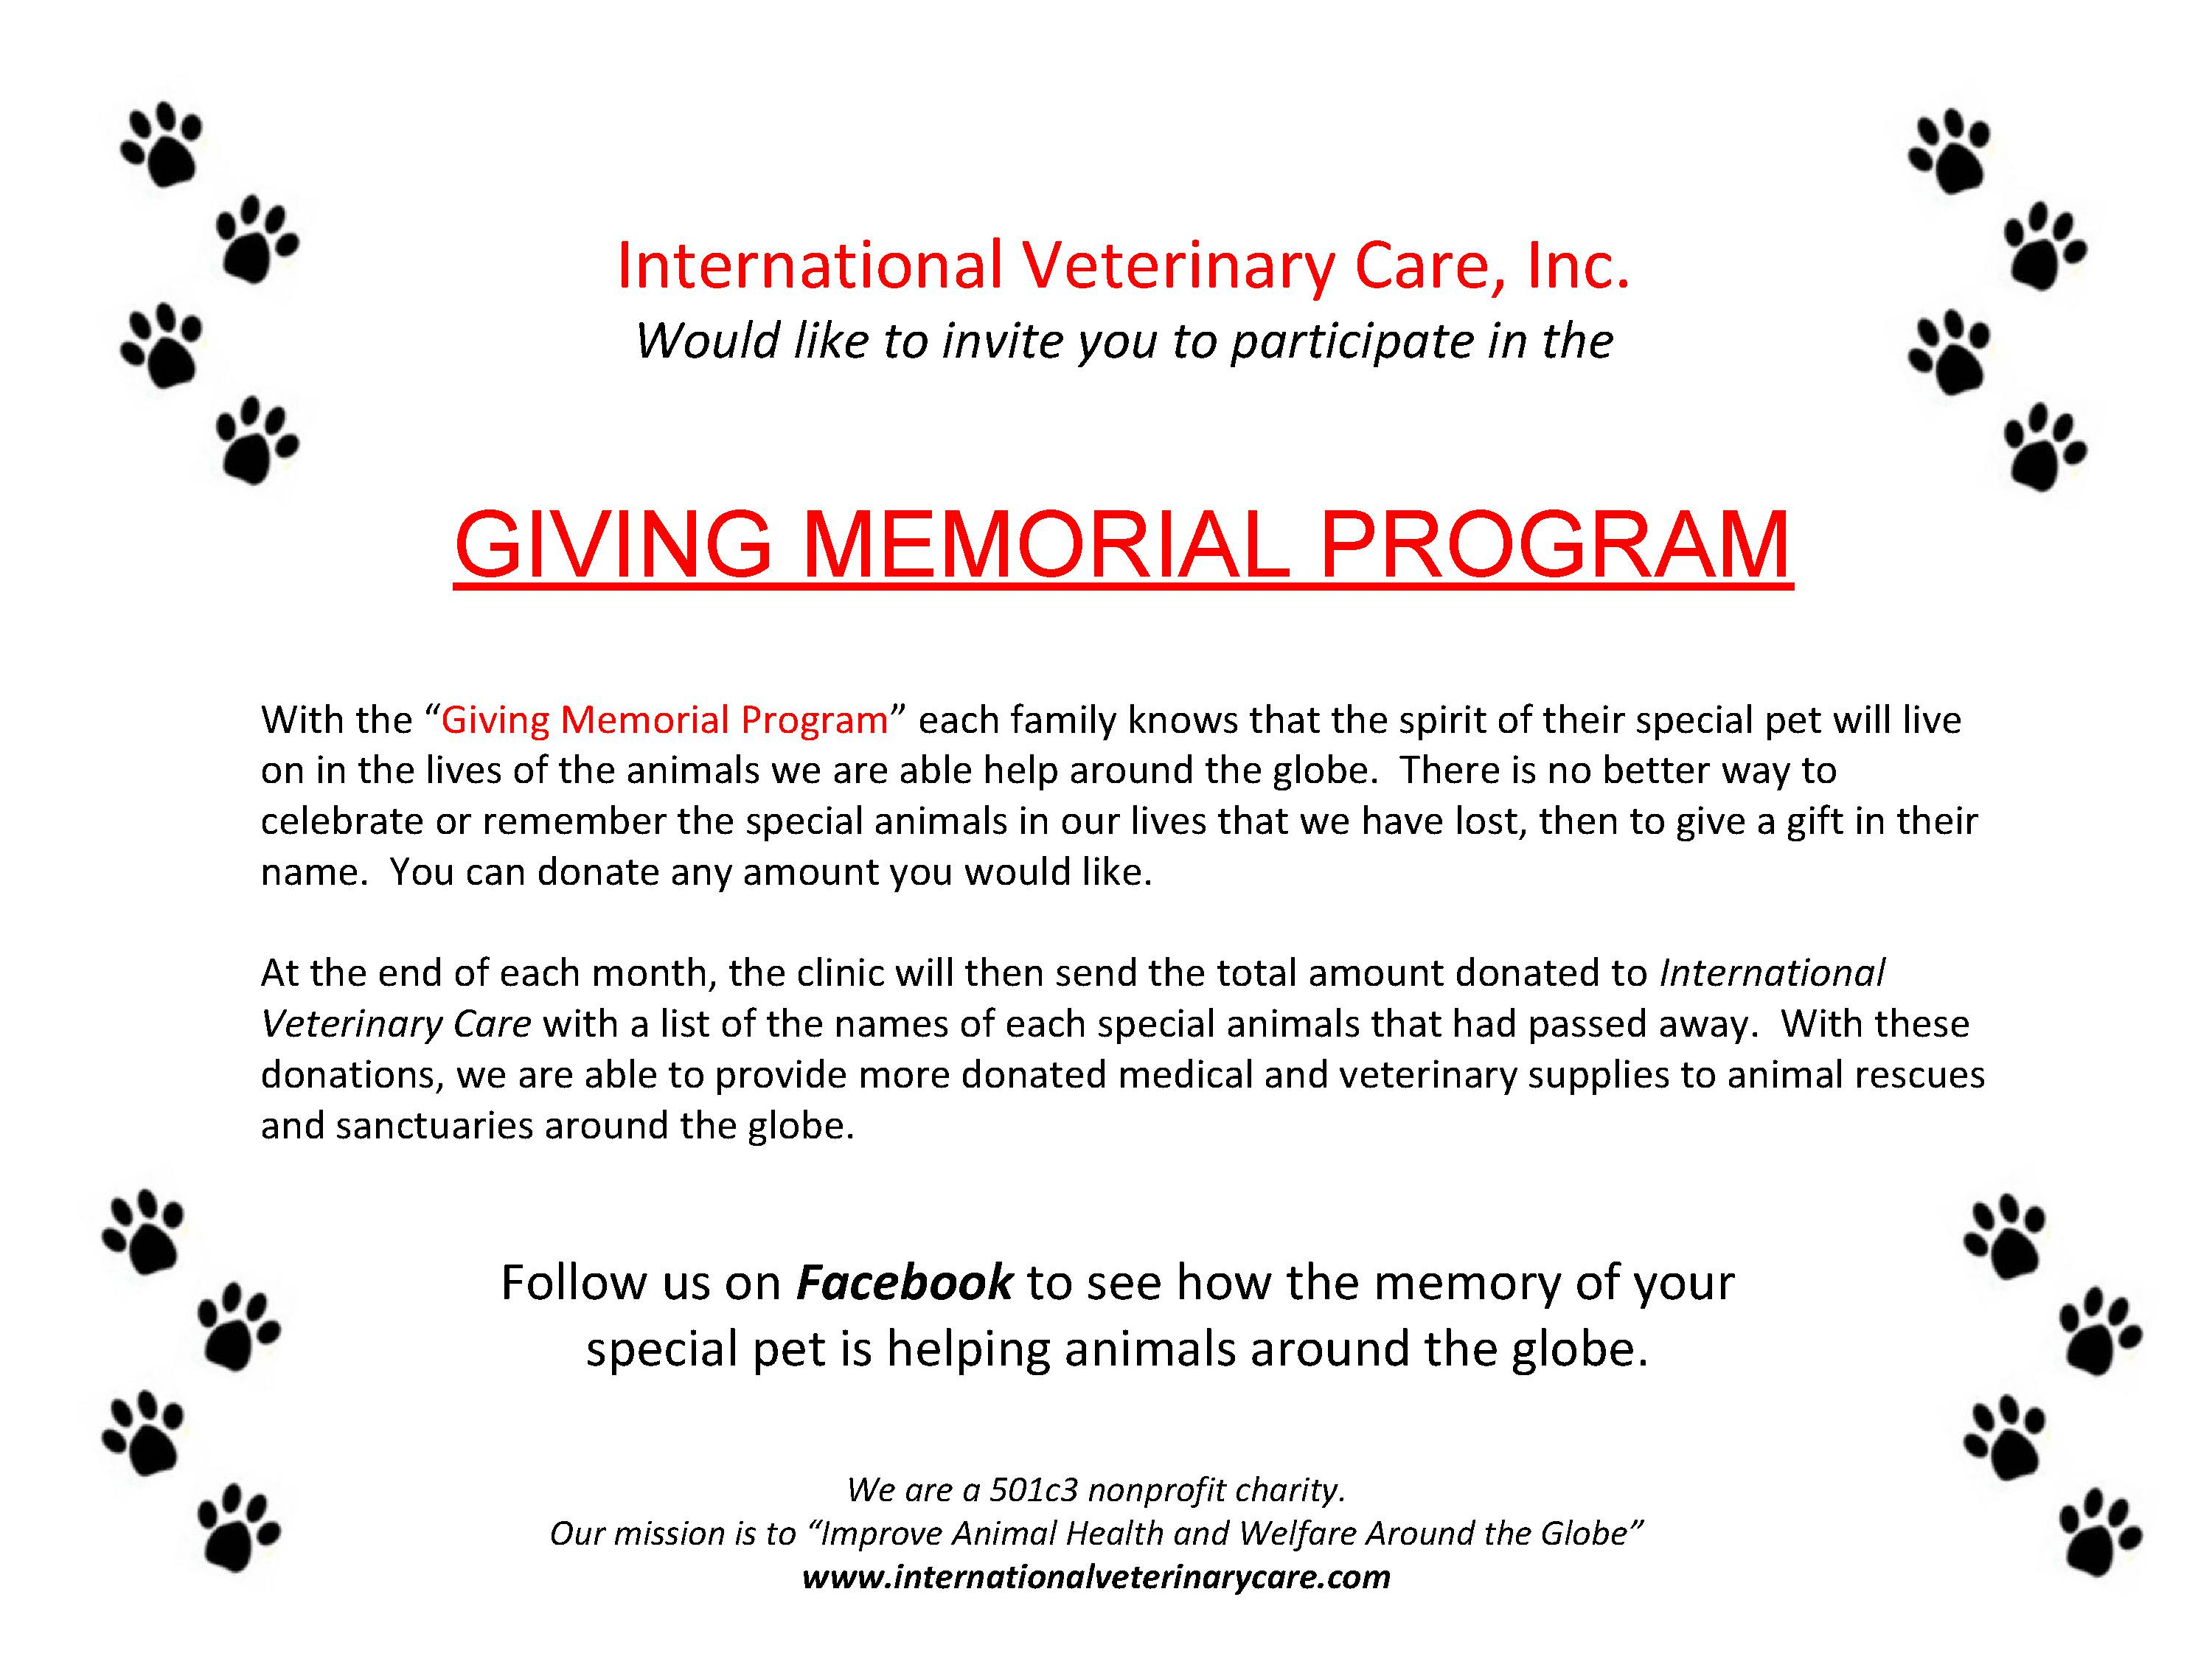 givingmemorialprogram